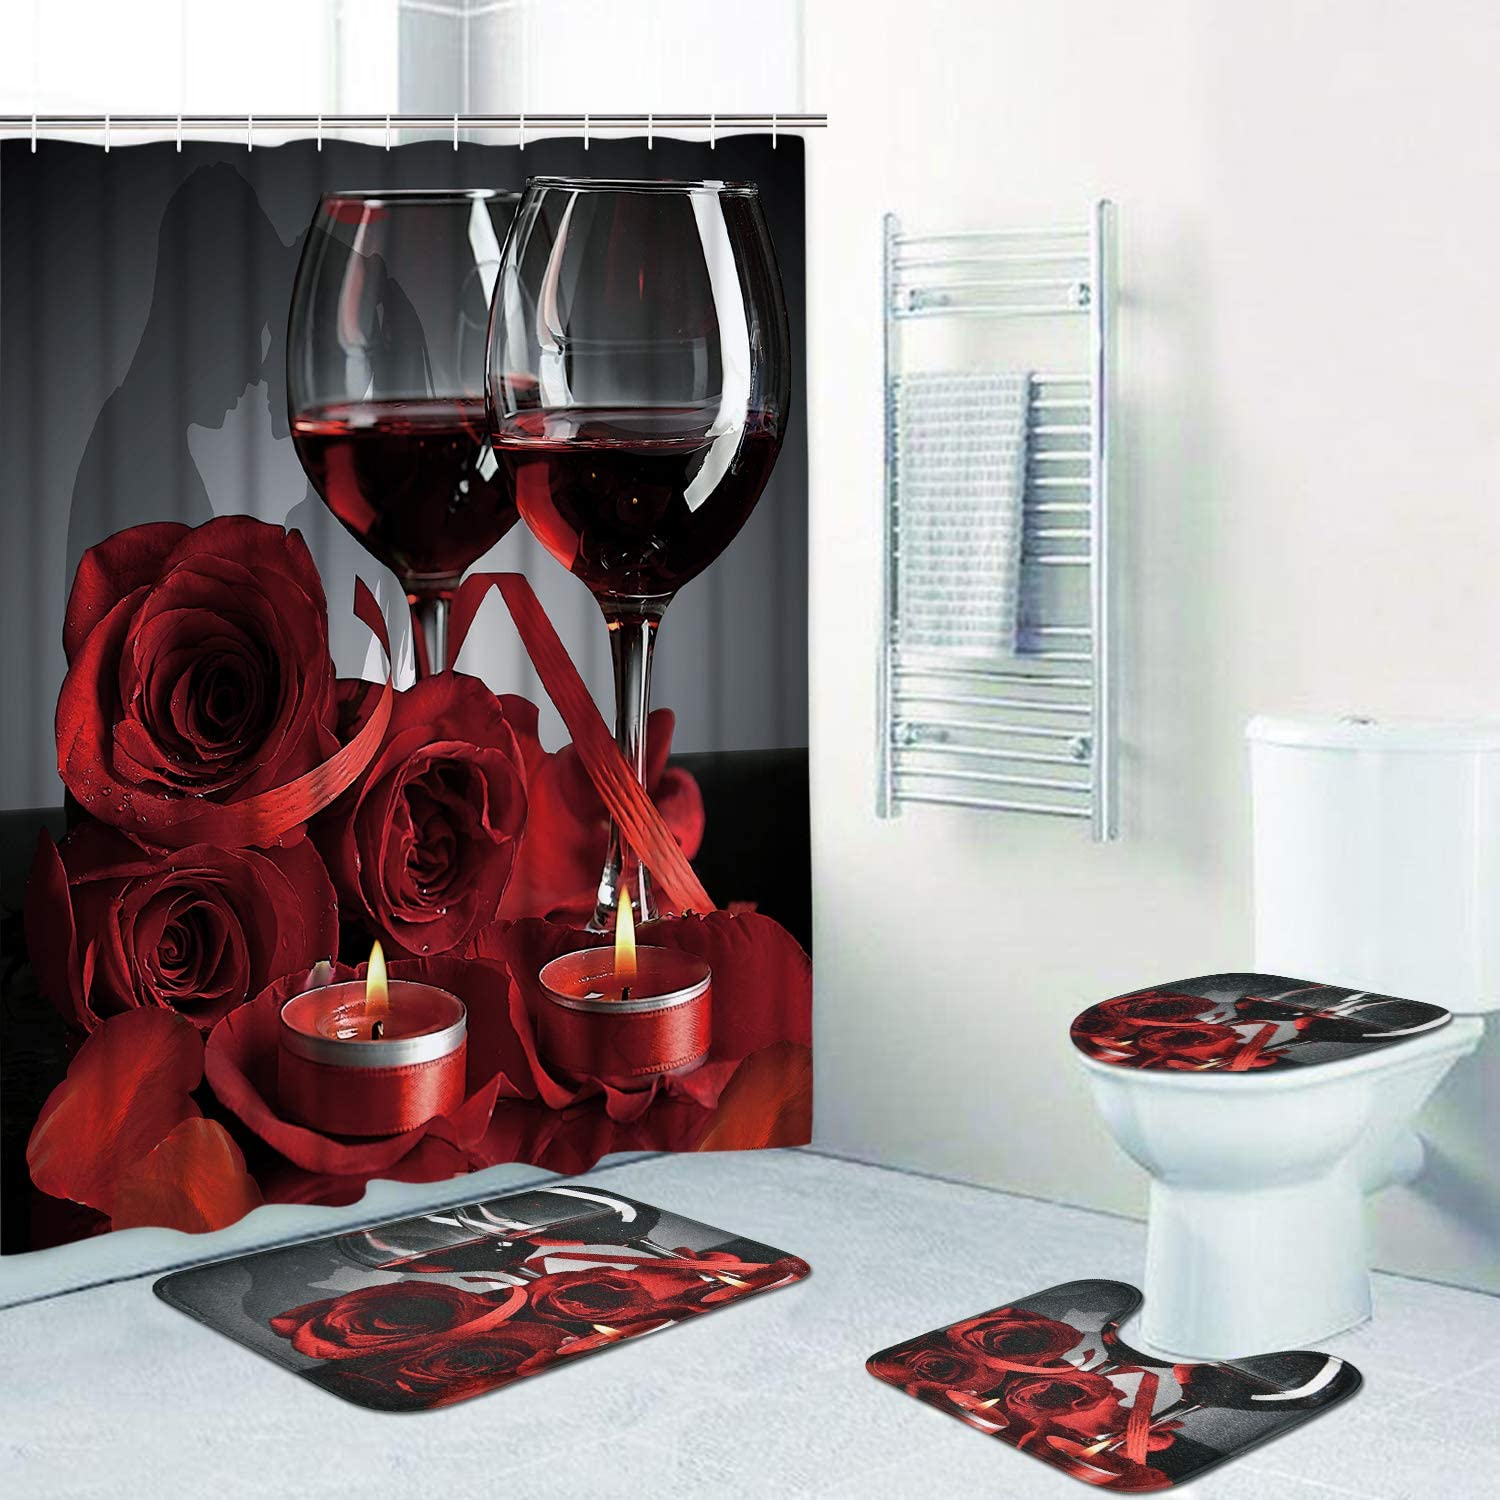 Alishomtll Valentines Shower Curtain Romantic Red Rose Flowers and Wine  Shower Curtain Sets with Non-Slip Rug, Toilet Lid Cover, Bath Mat and 10